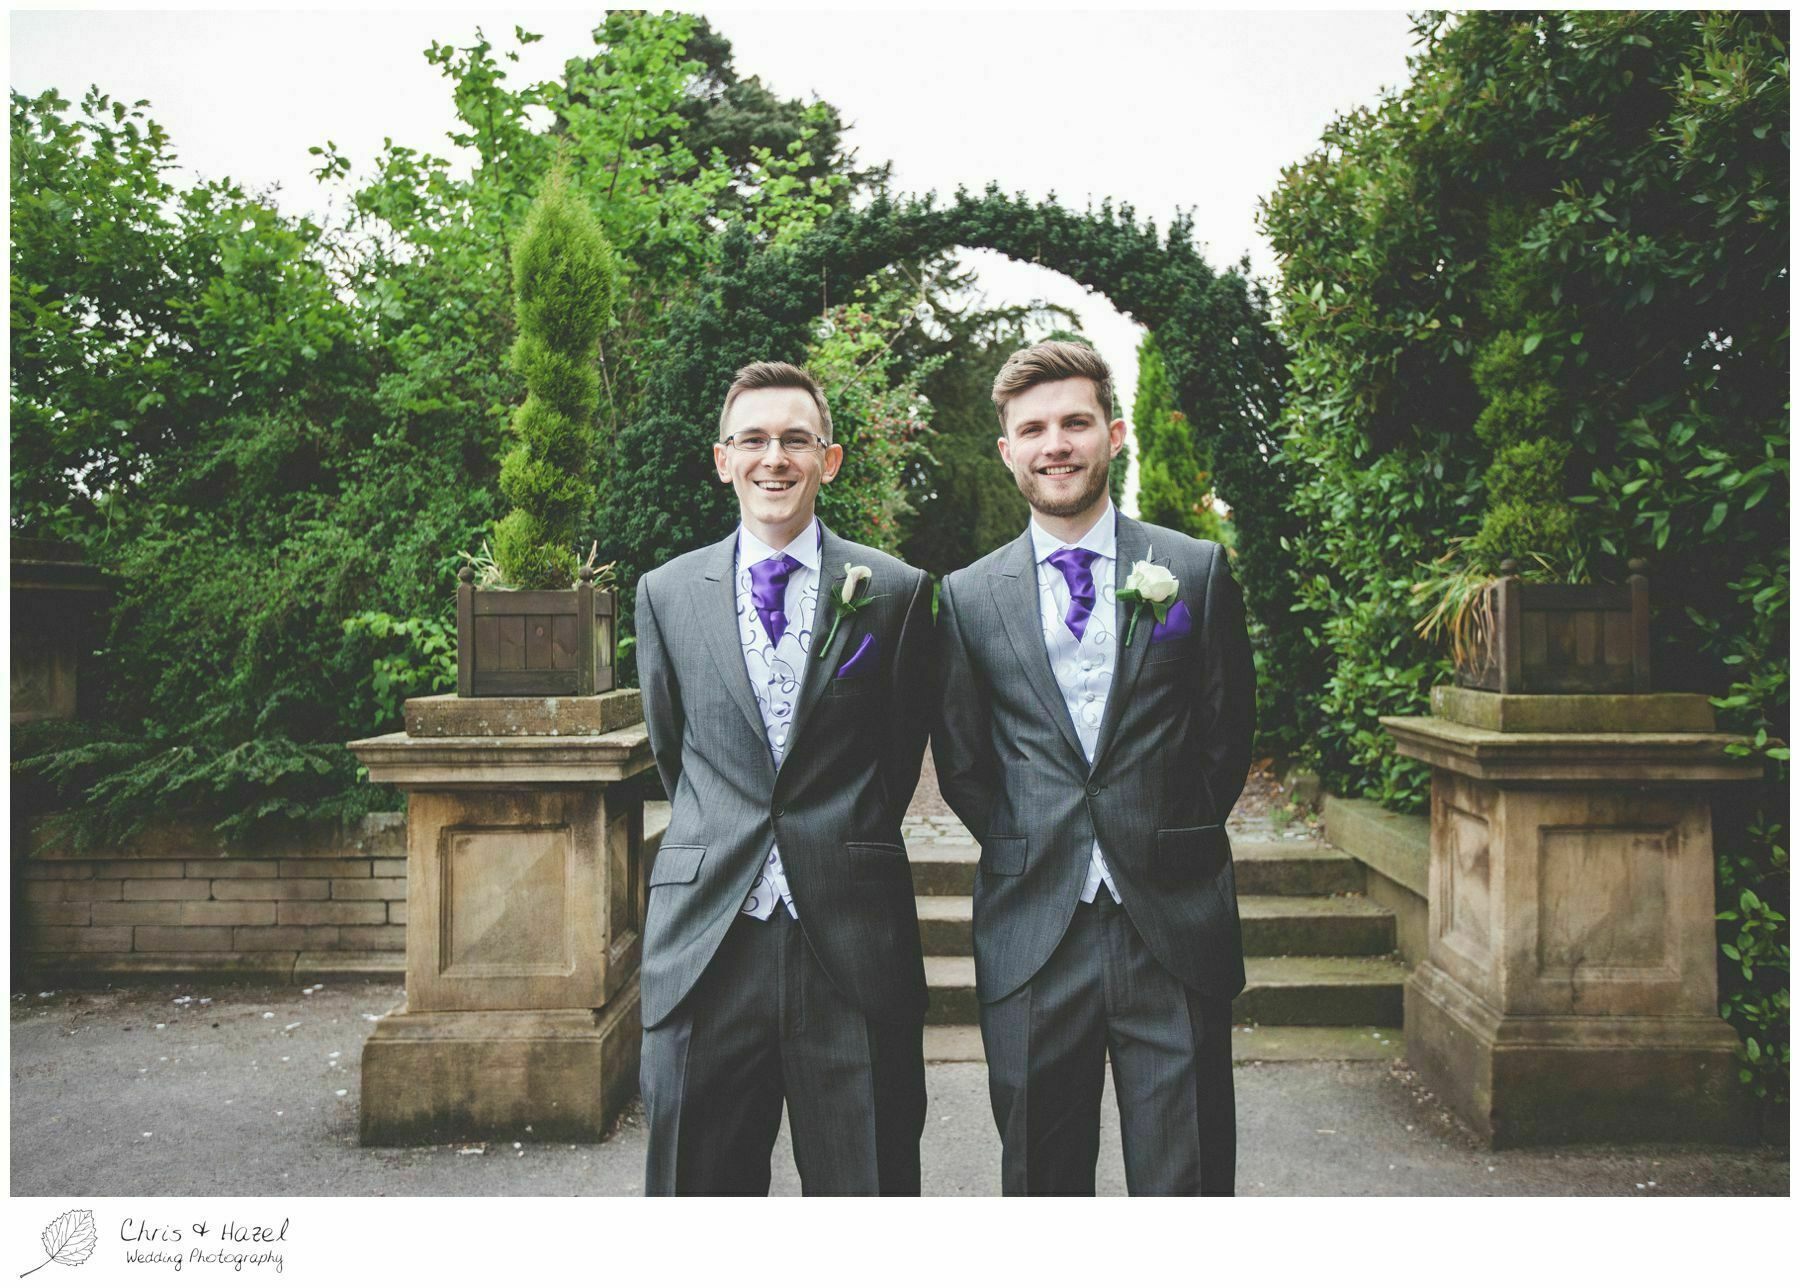 Groom, best man, bagden hall wedding venue, documentary wedding photography, denny dale, huddersfield, Wedding Photographer, Bagden Hall, Wedding Photography, Chris and Hazel Wedding Photography, Alex tomenson, Vicky hunt